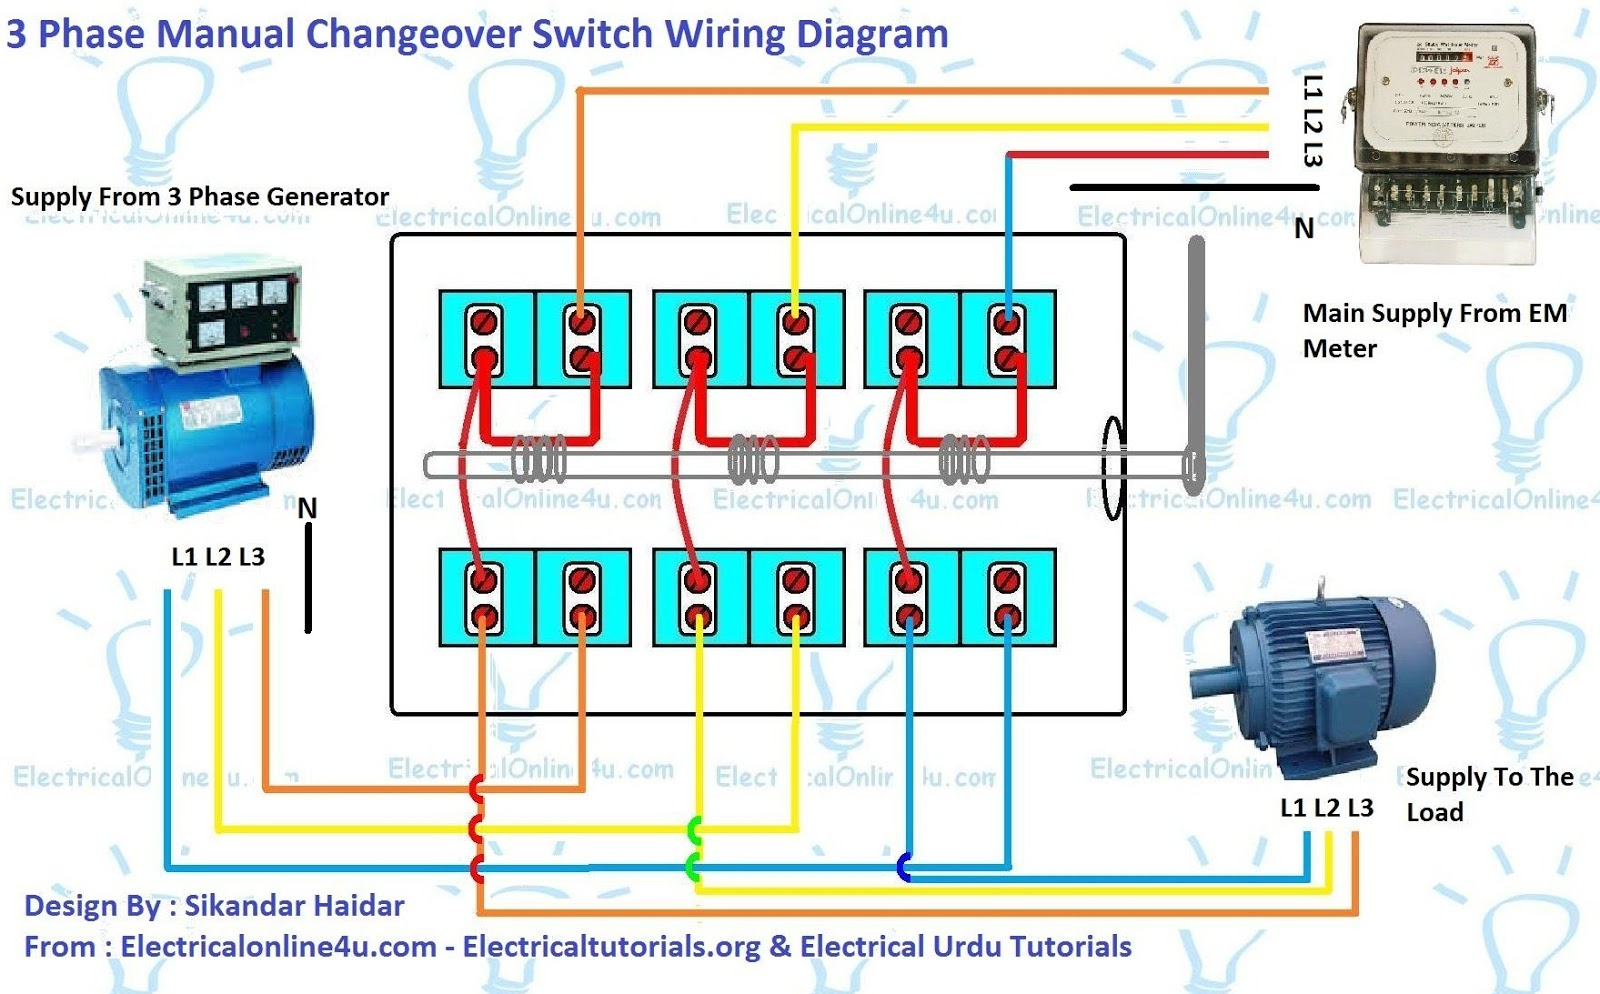 3 Phase Transfer Switch Wiring Diagram - Trusted Wiring Diagram